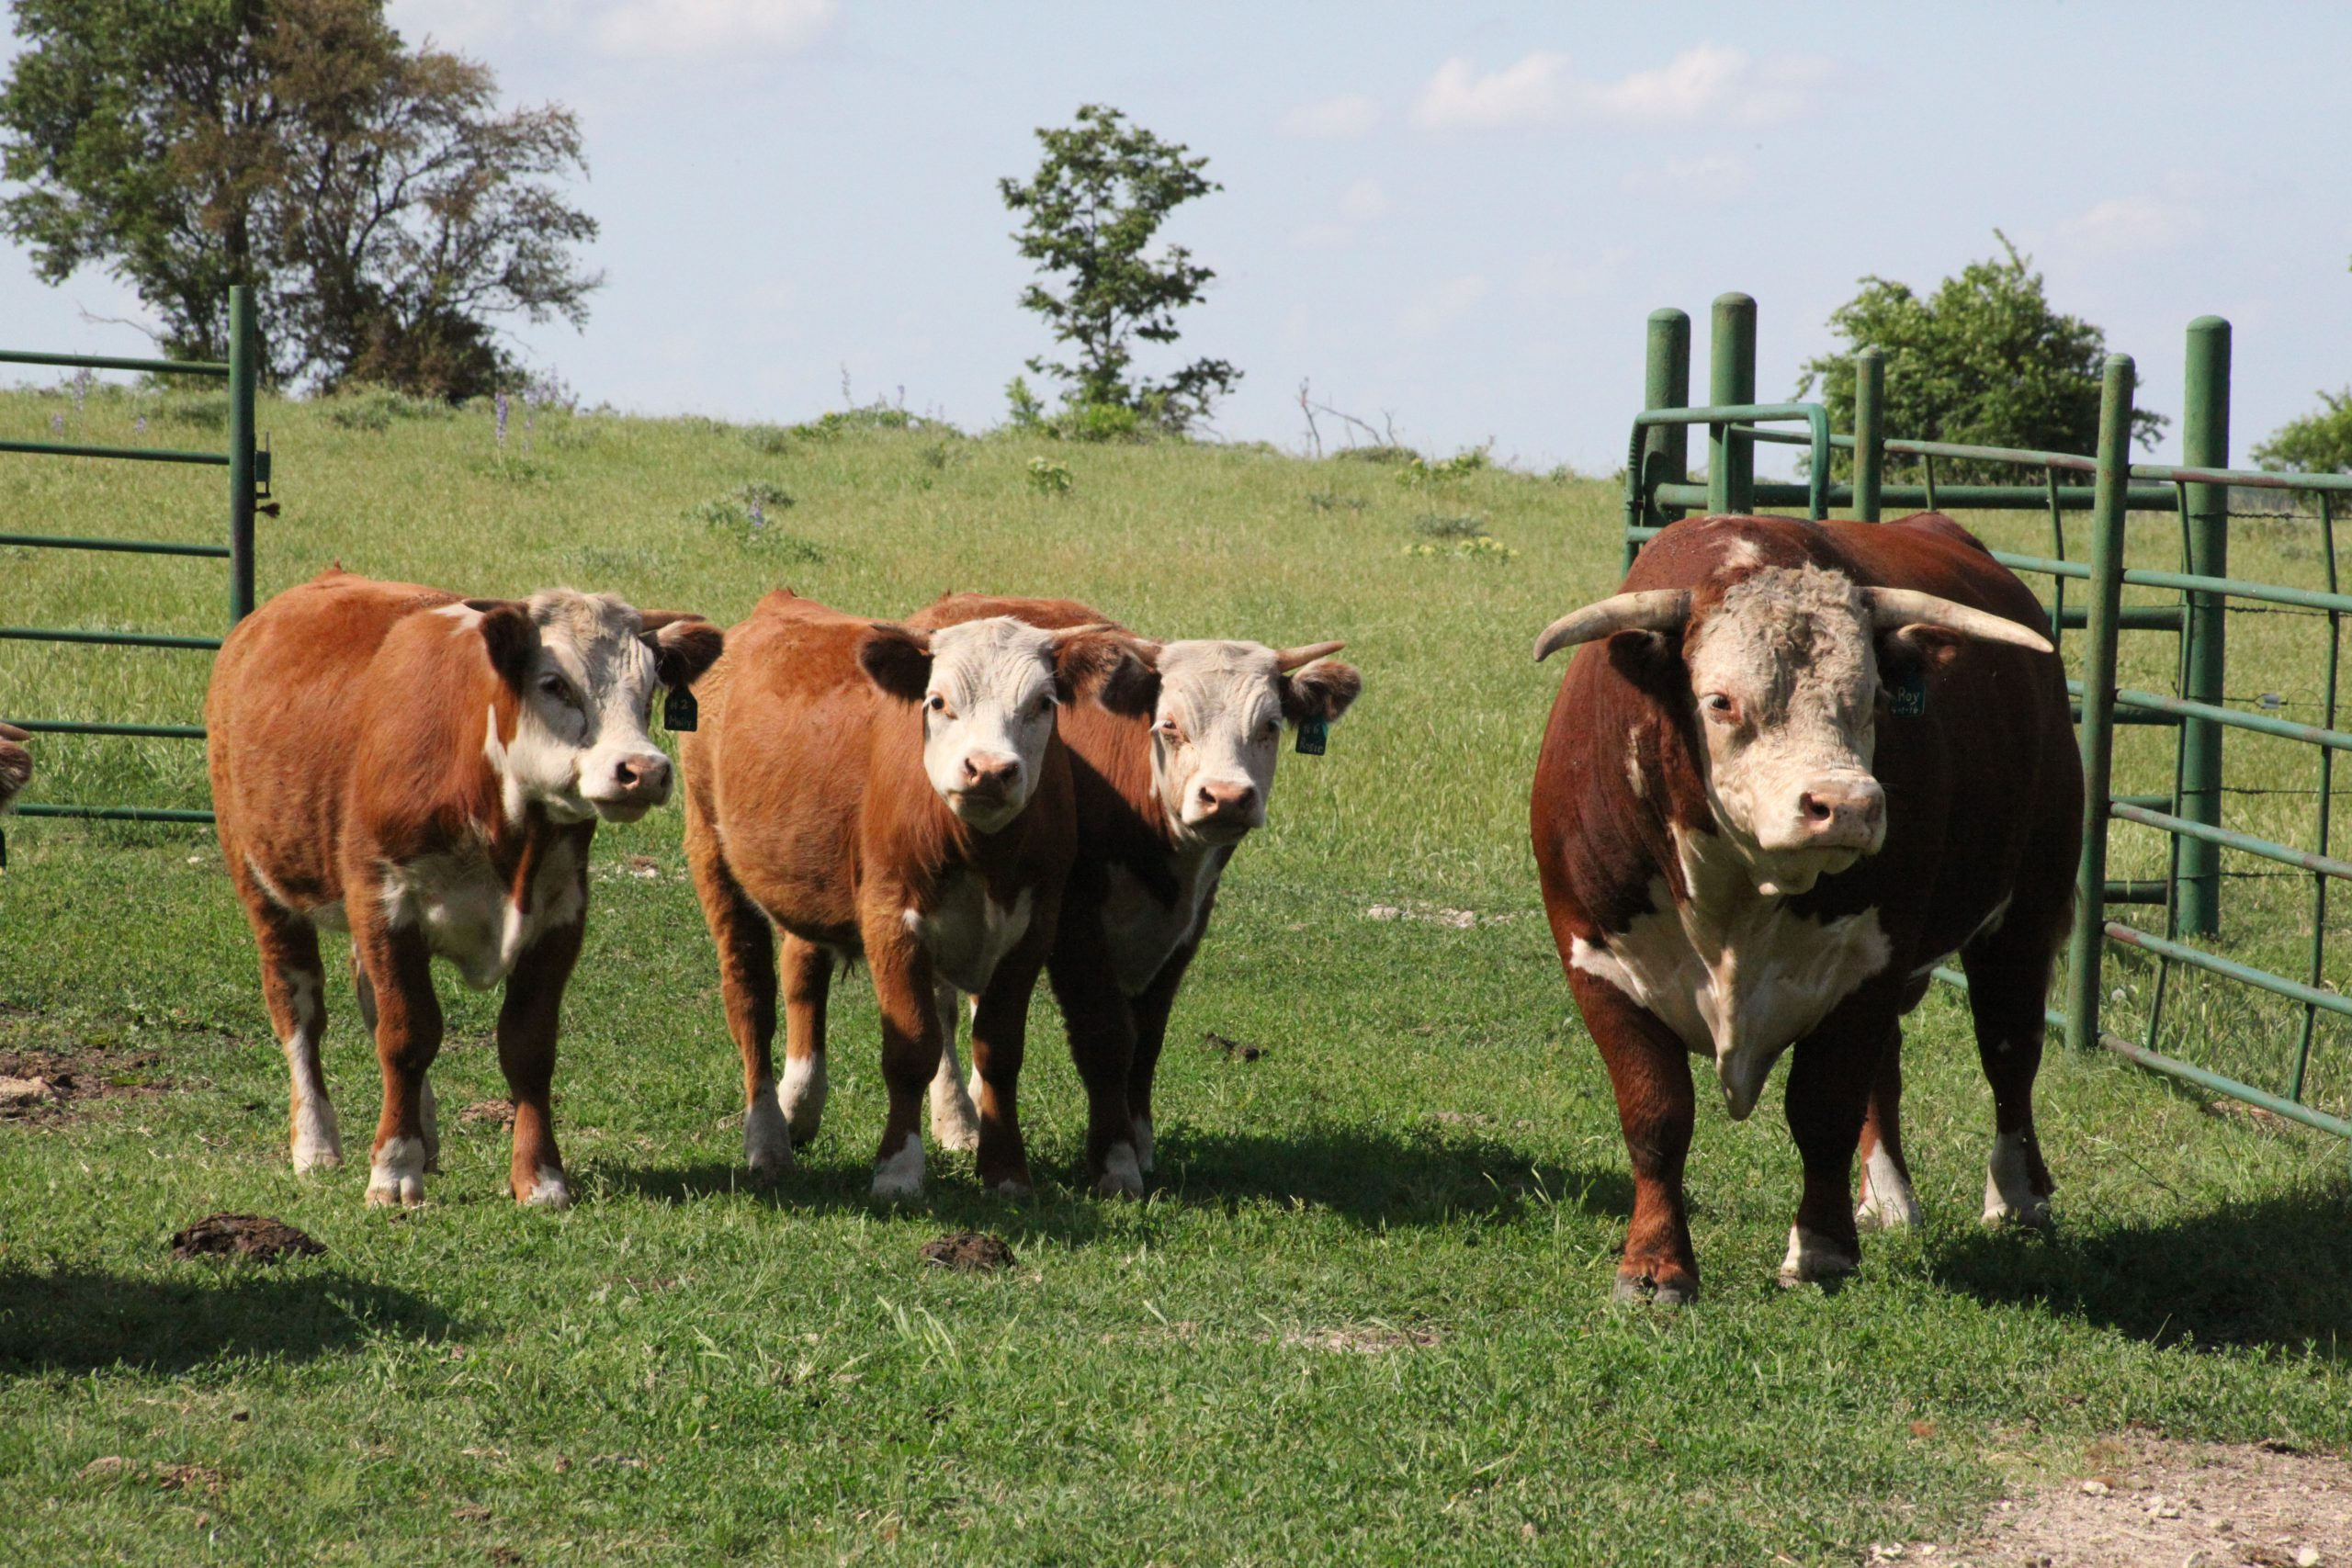 Local ranchers aim for quality over quantity